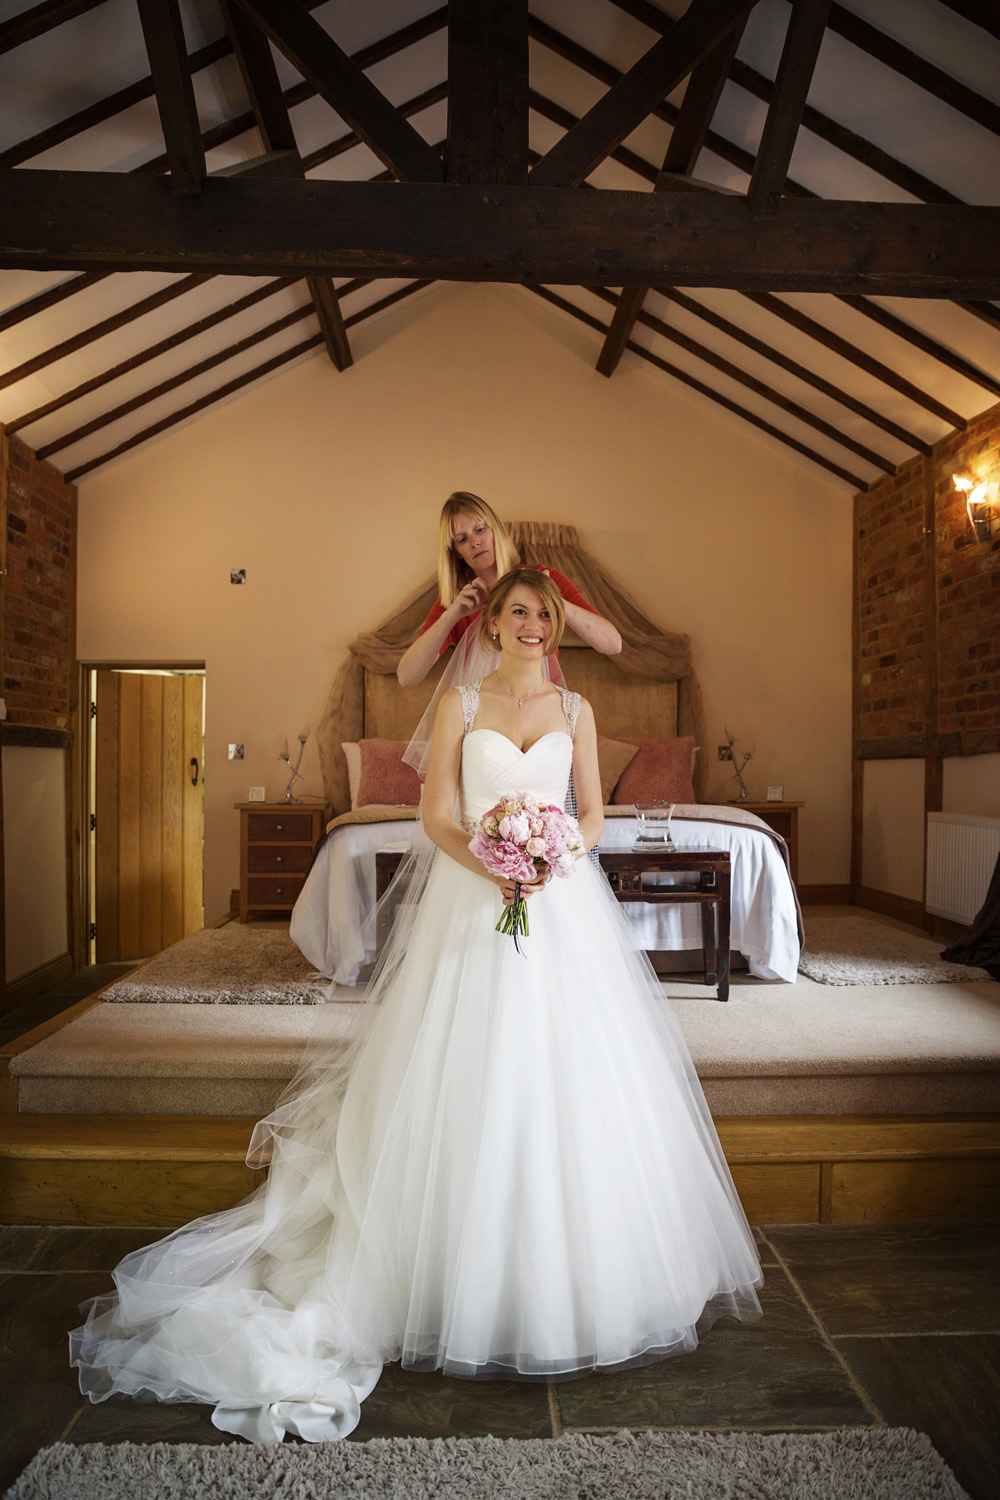 Rivervale_Barn_Wedding_Photographer_Yateley_055.jpg